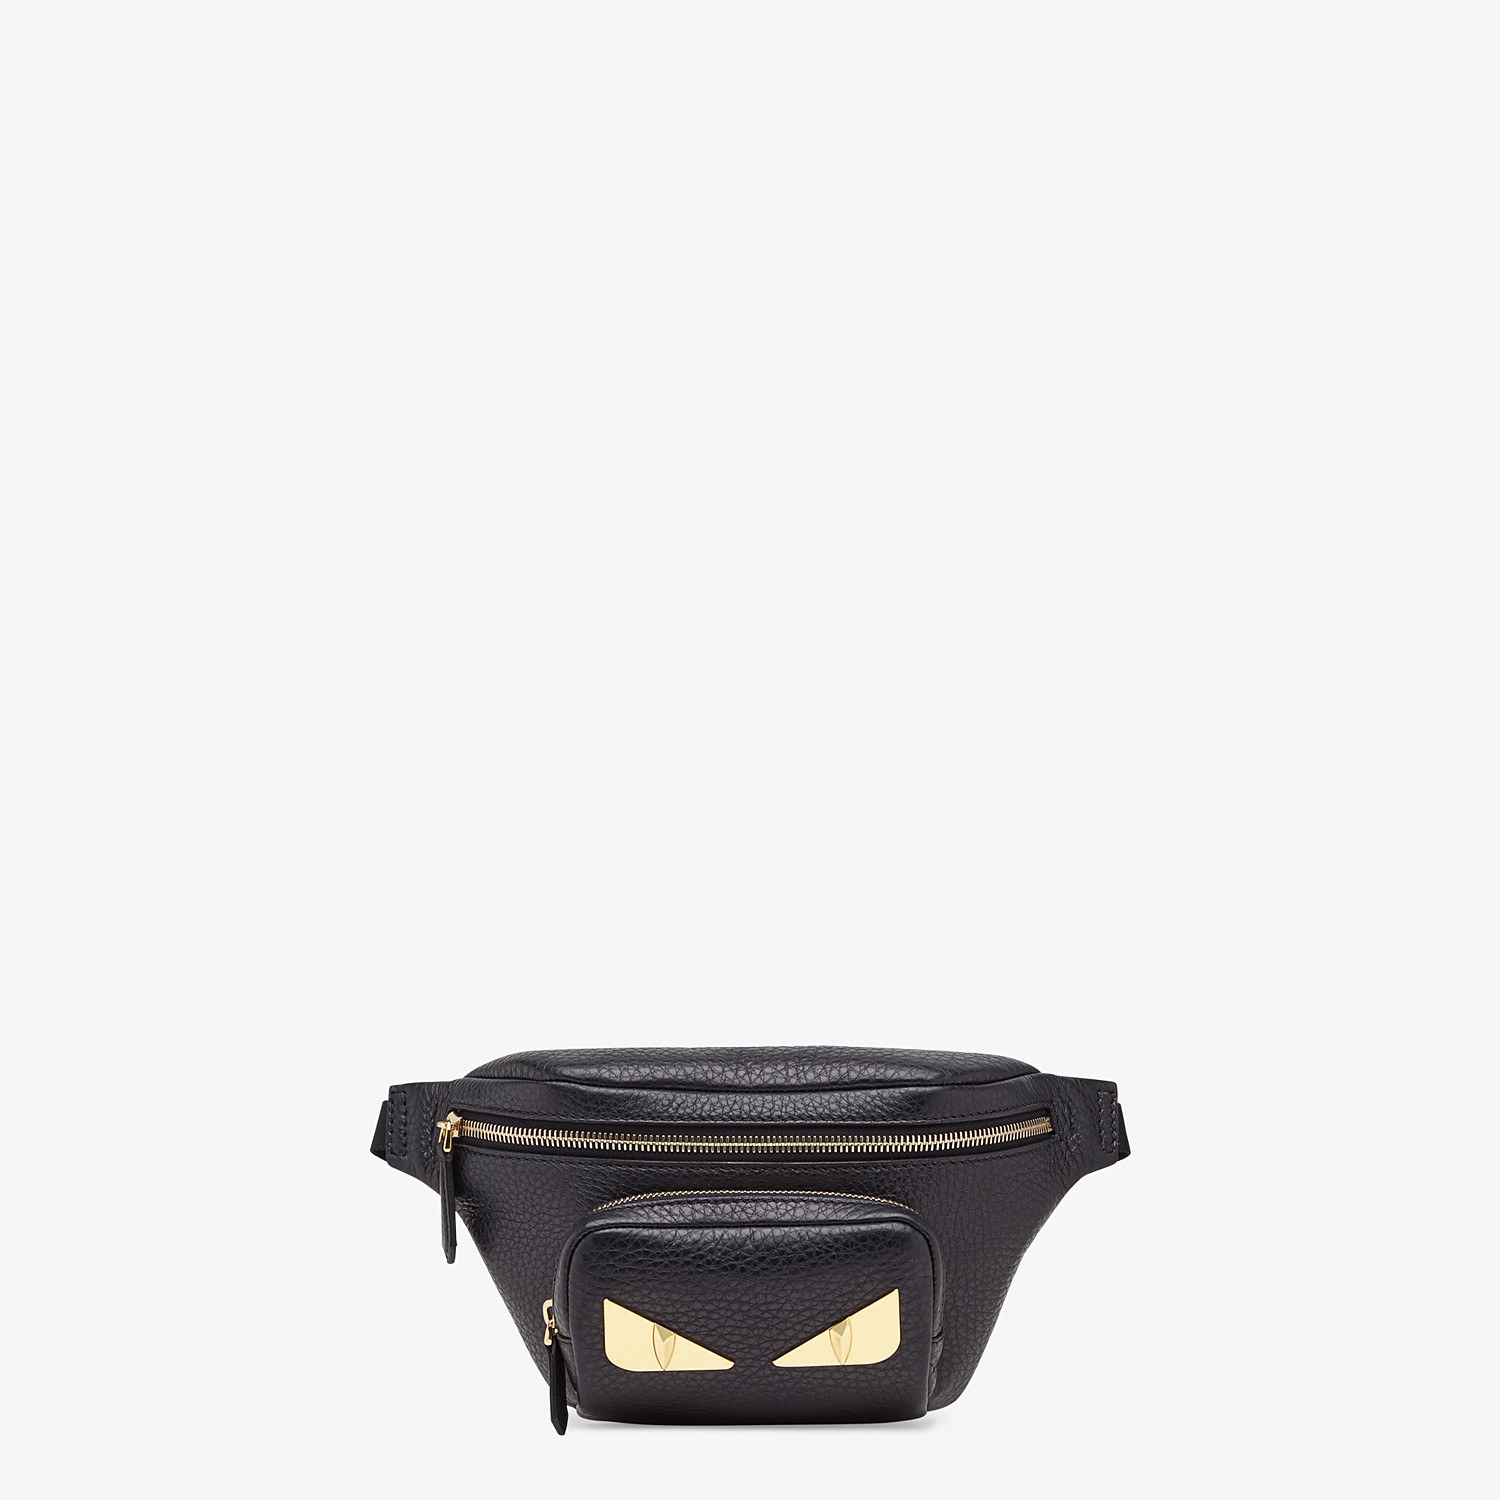 FENDI BELT BAG - Black Romano leather belt bag - view 1 detail